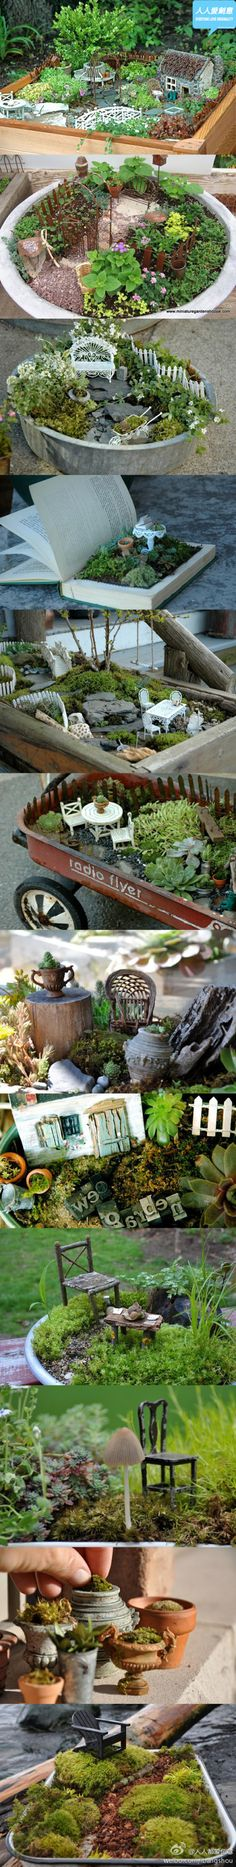 "Cute ideas for small ""fairy"" gardens!"